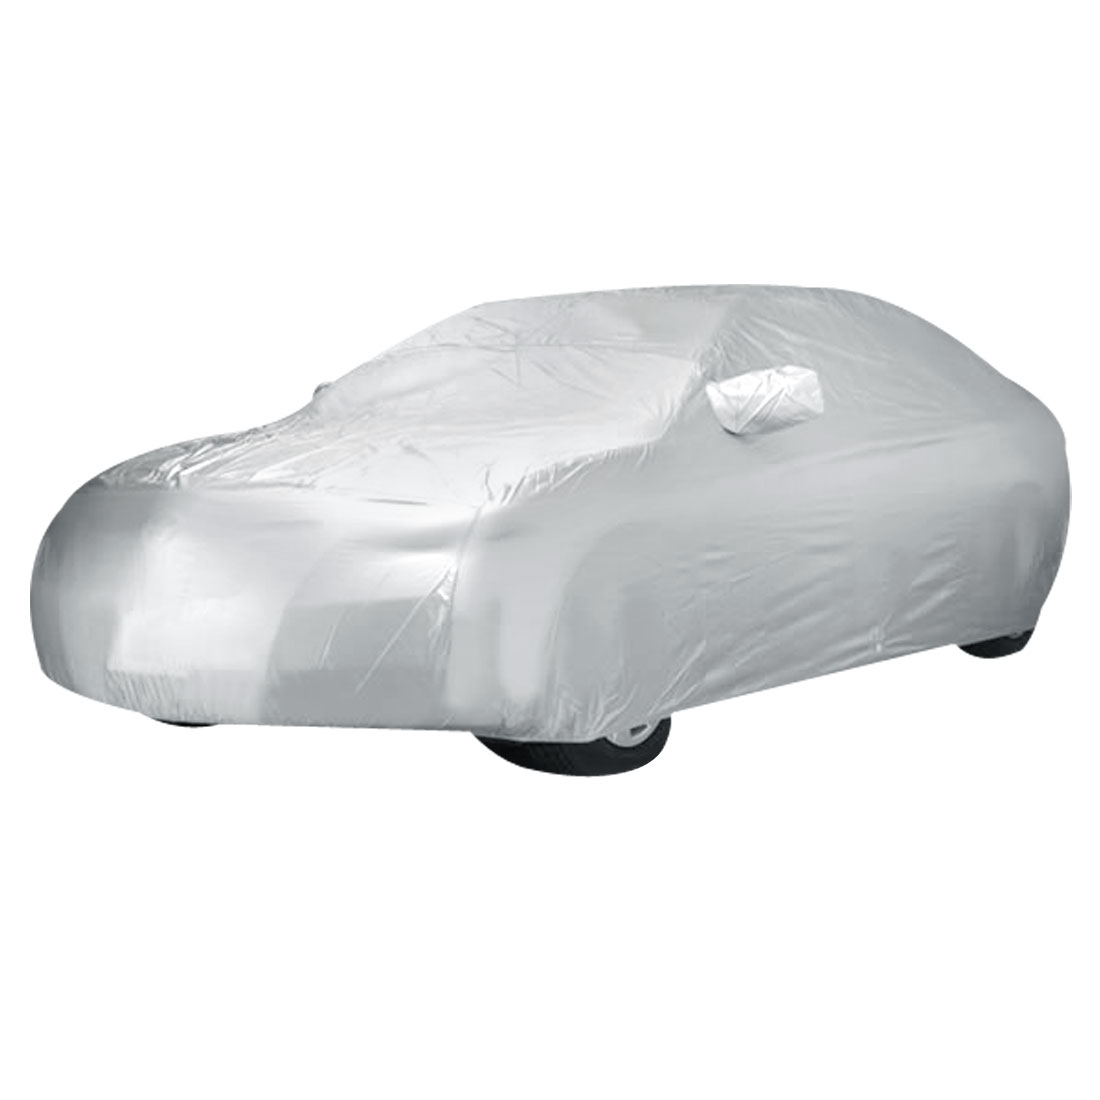 Vehicle Auto Cover Waterproof Sun UV Dust Rain Resistant All Weather Protective Tool Size XL 5150*1900*1550 (L*W*H)